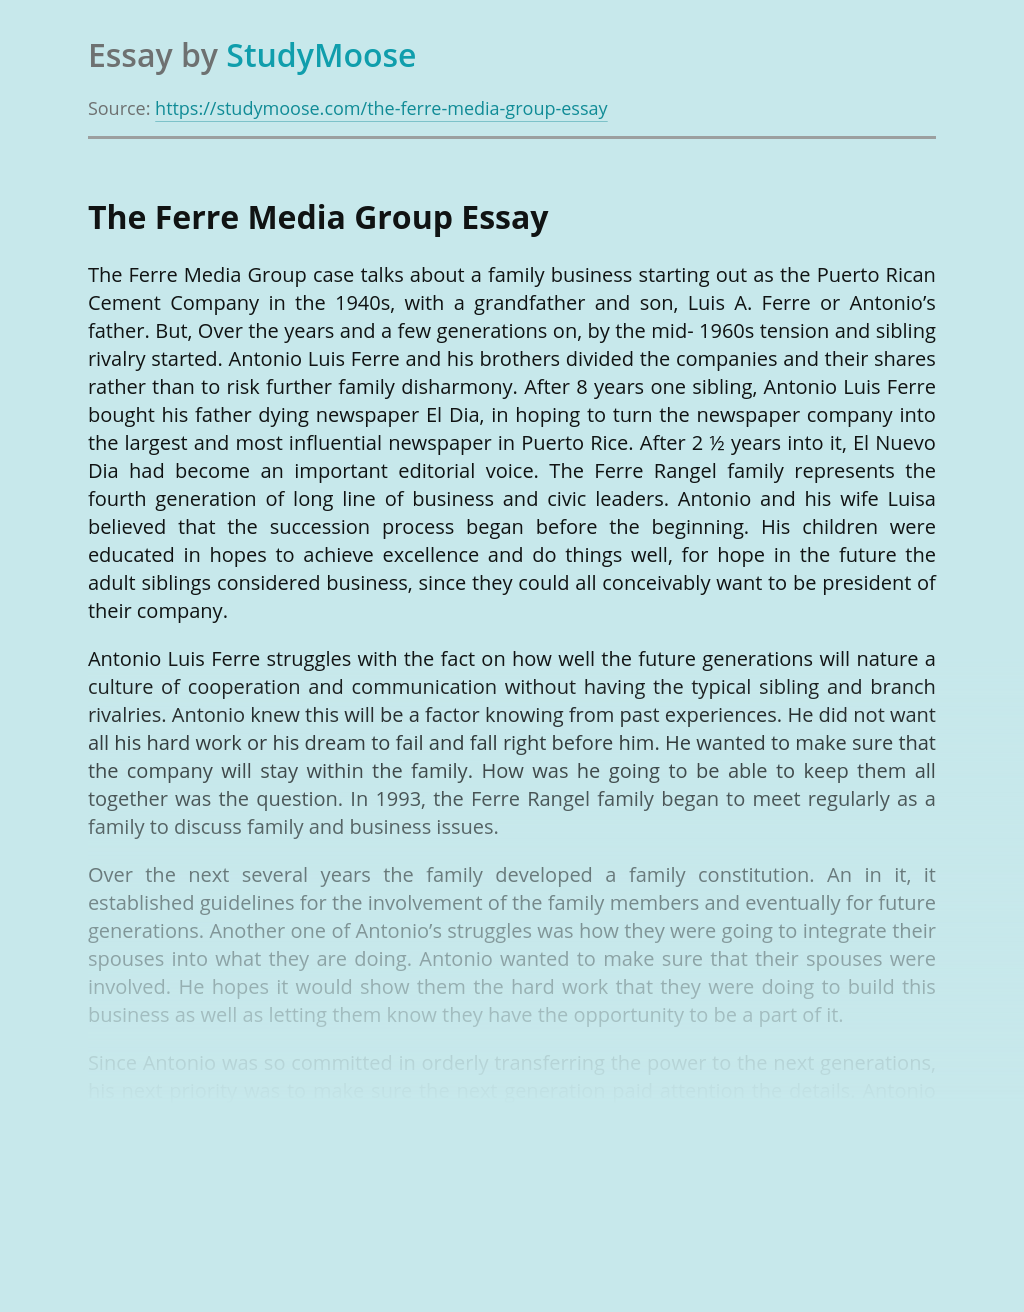 The Ferre Media Group